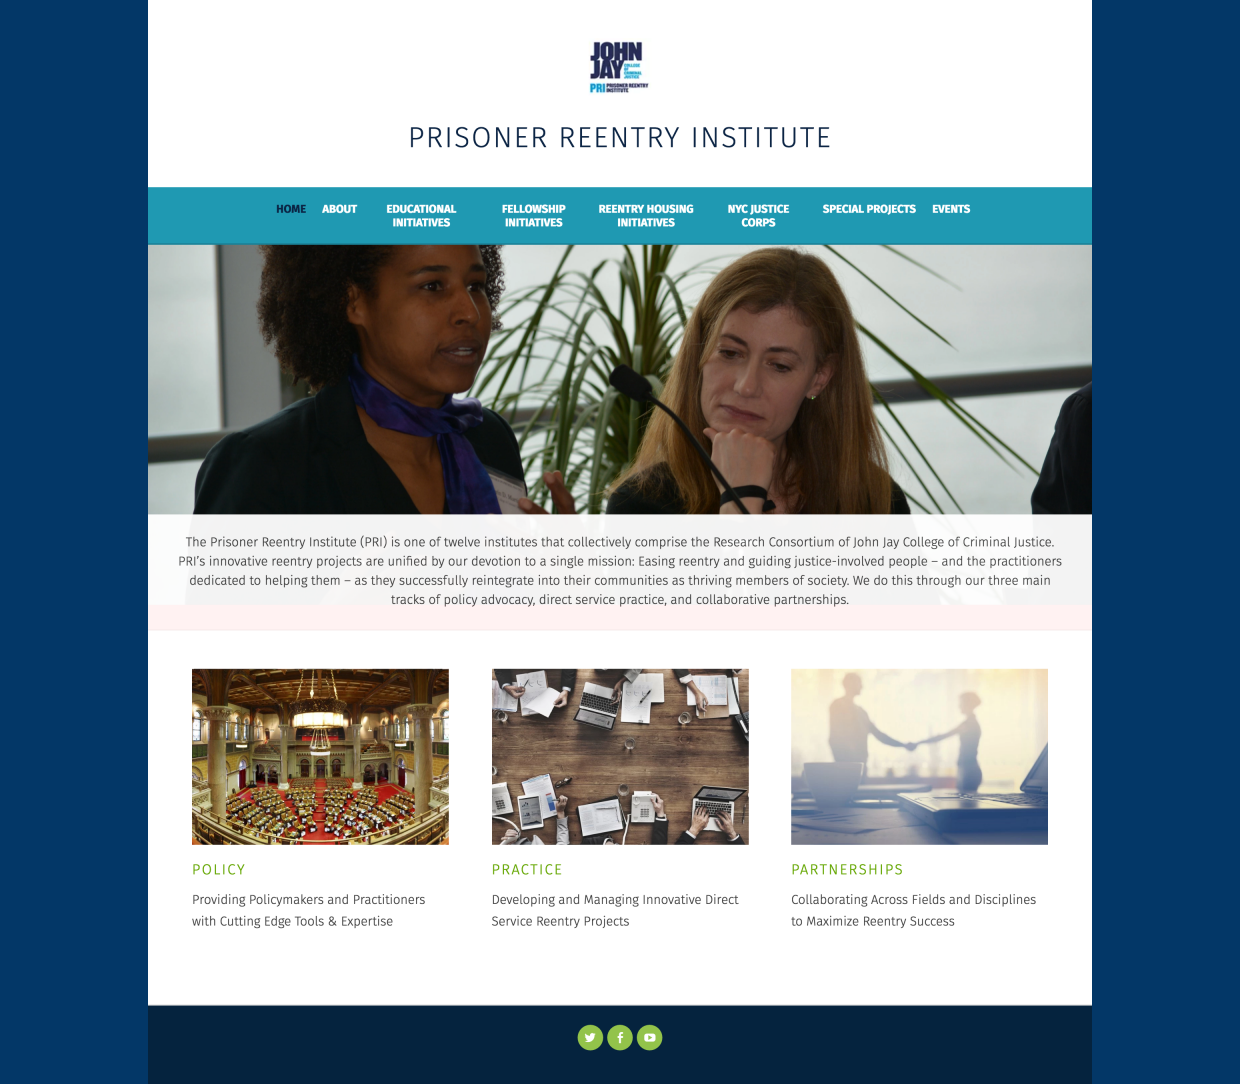 John Jay Prisoner Reentry Institute: John Jay Homepage